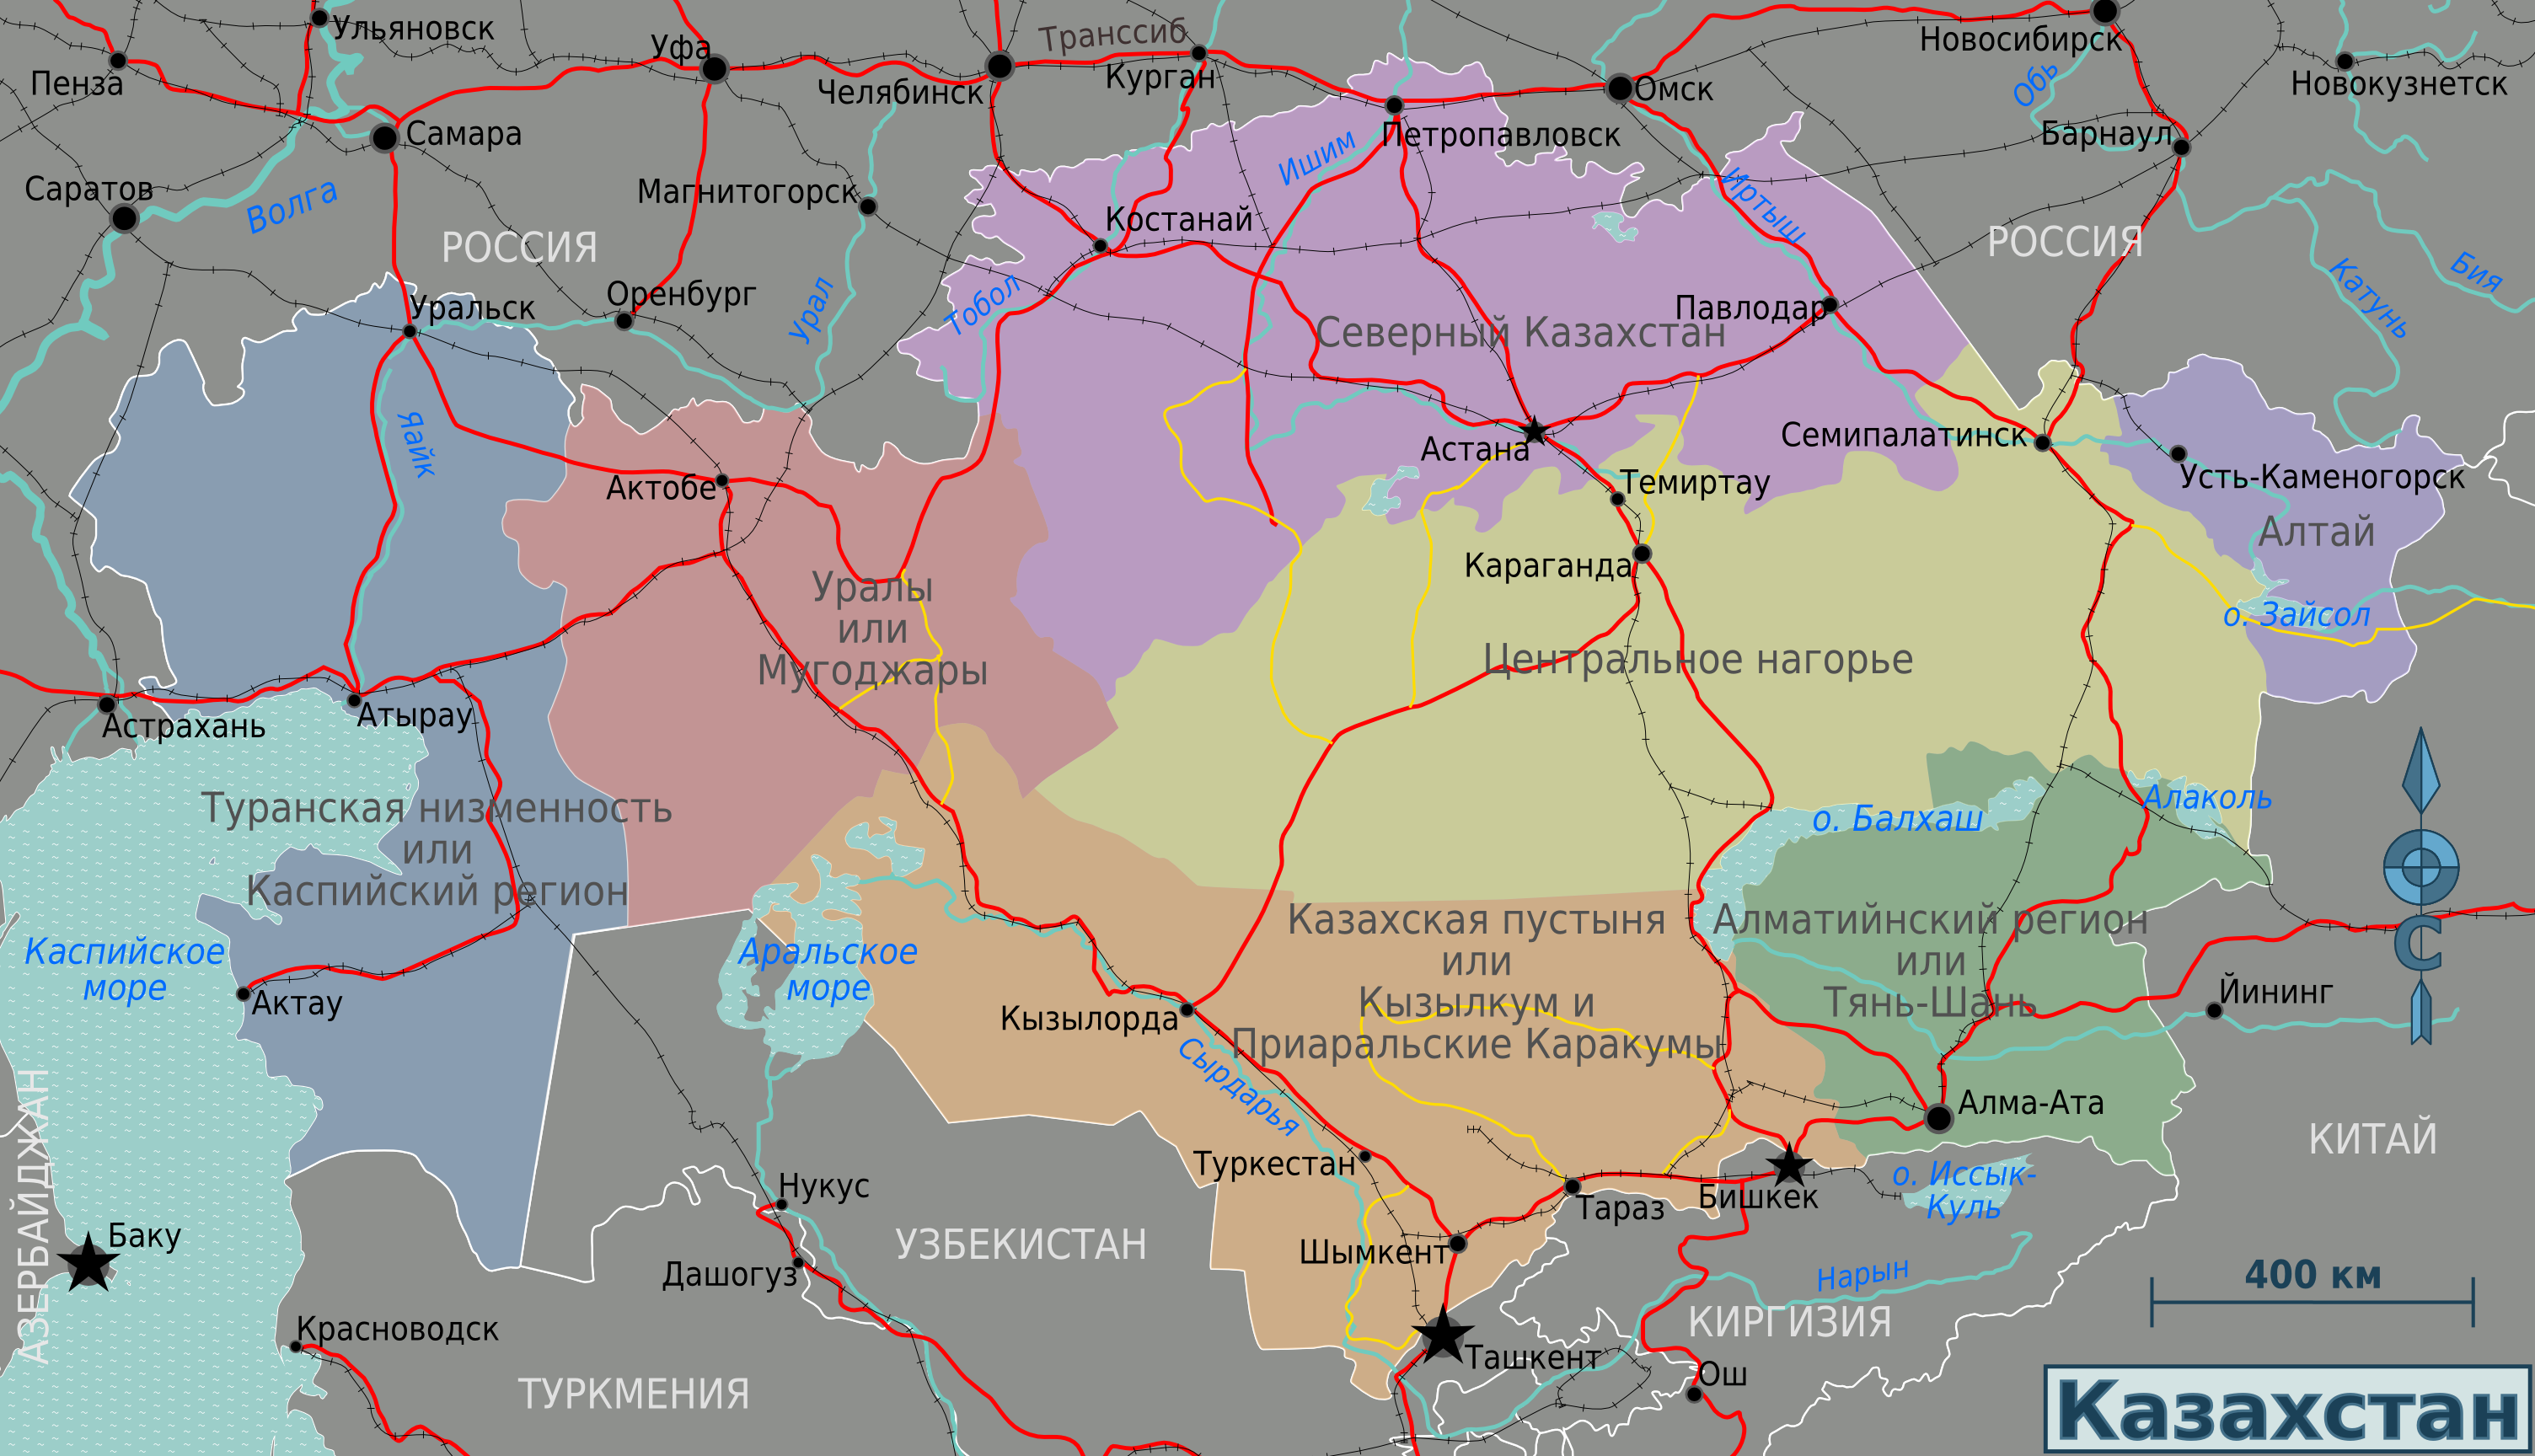 Kazakhstan_regions_map_(ru).png